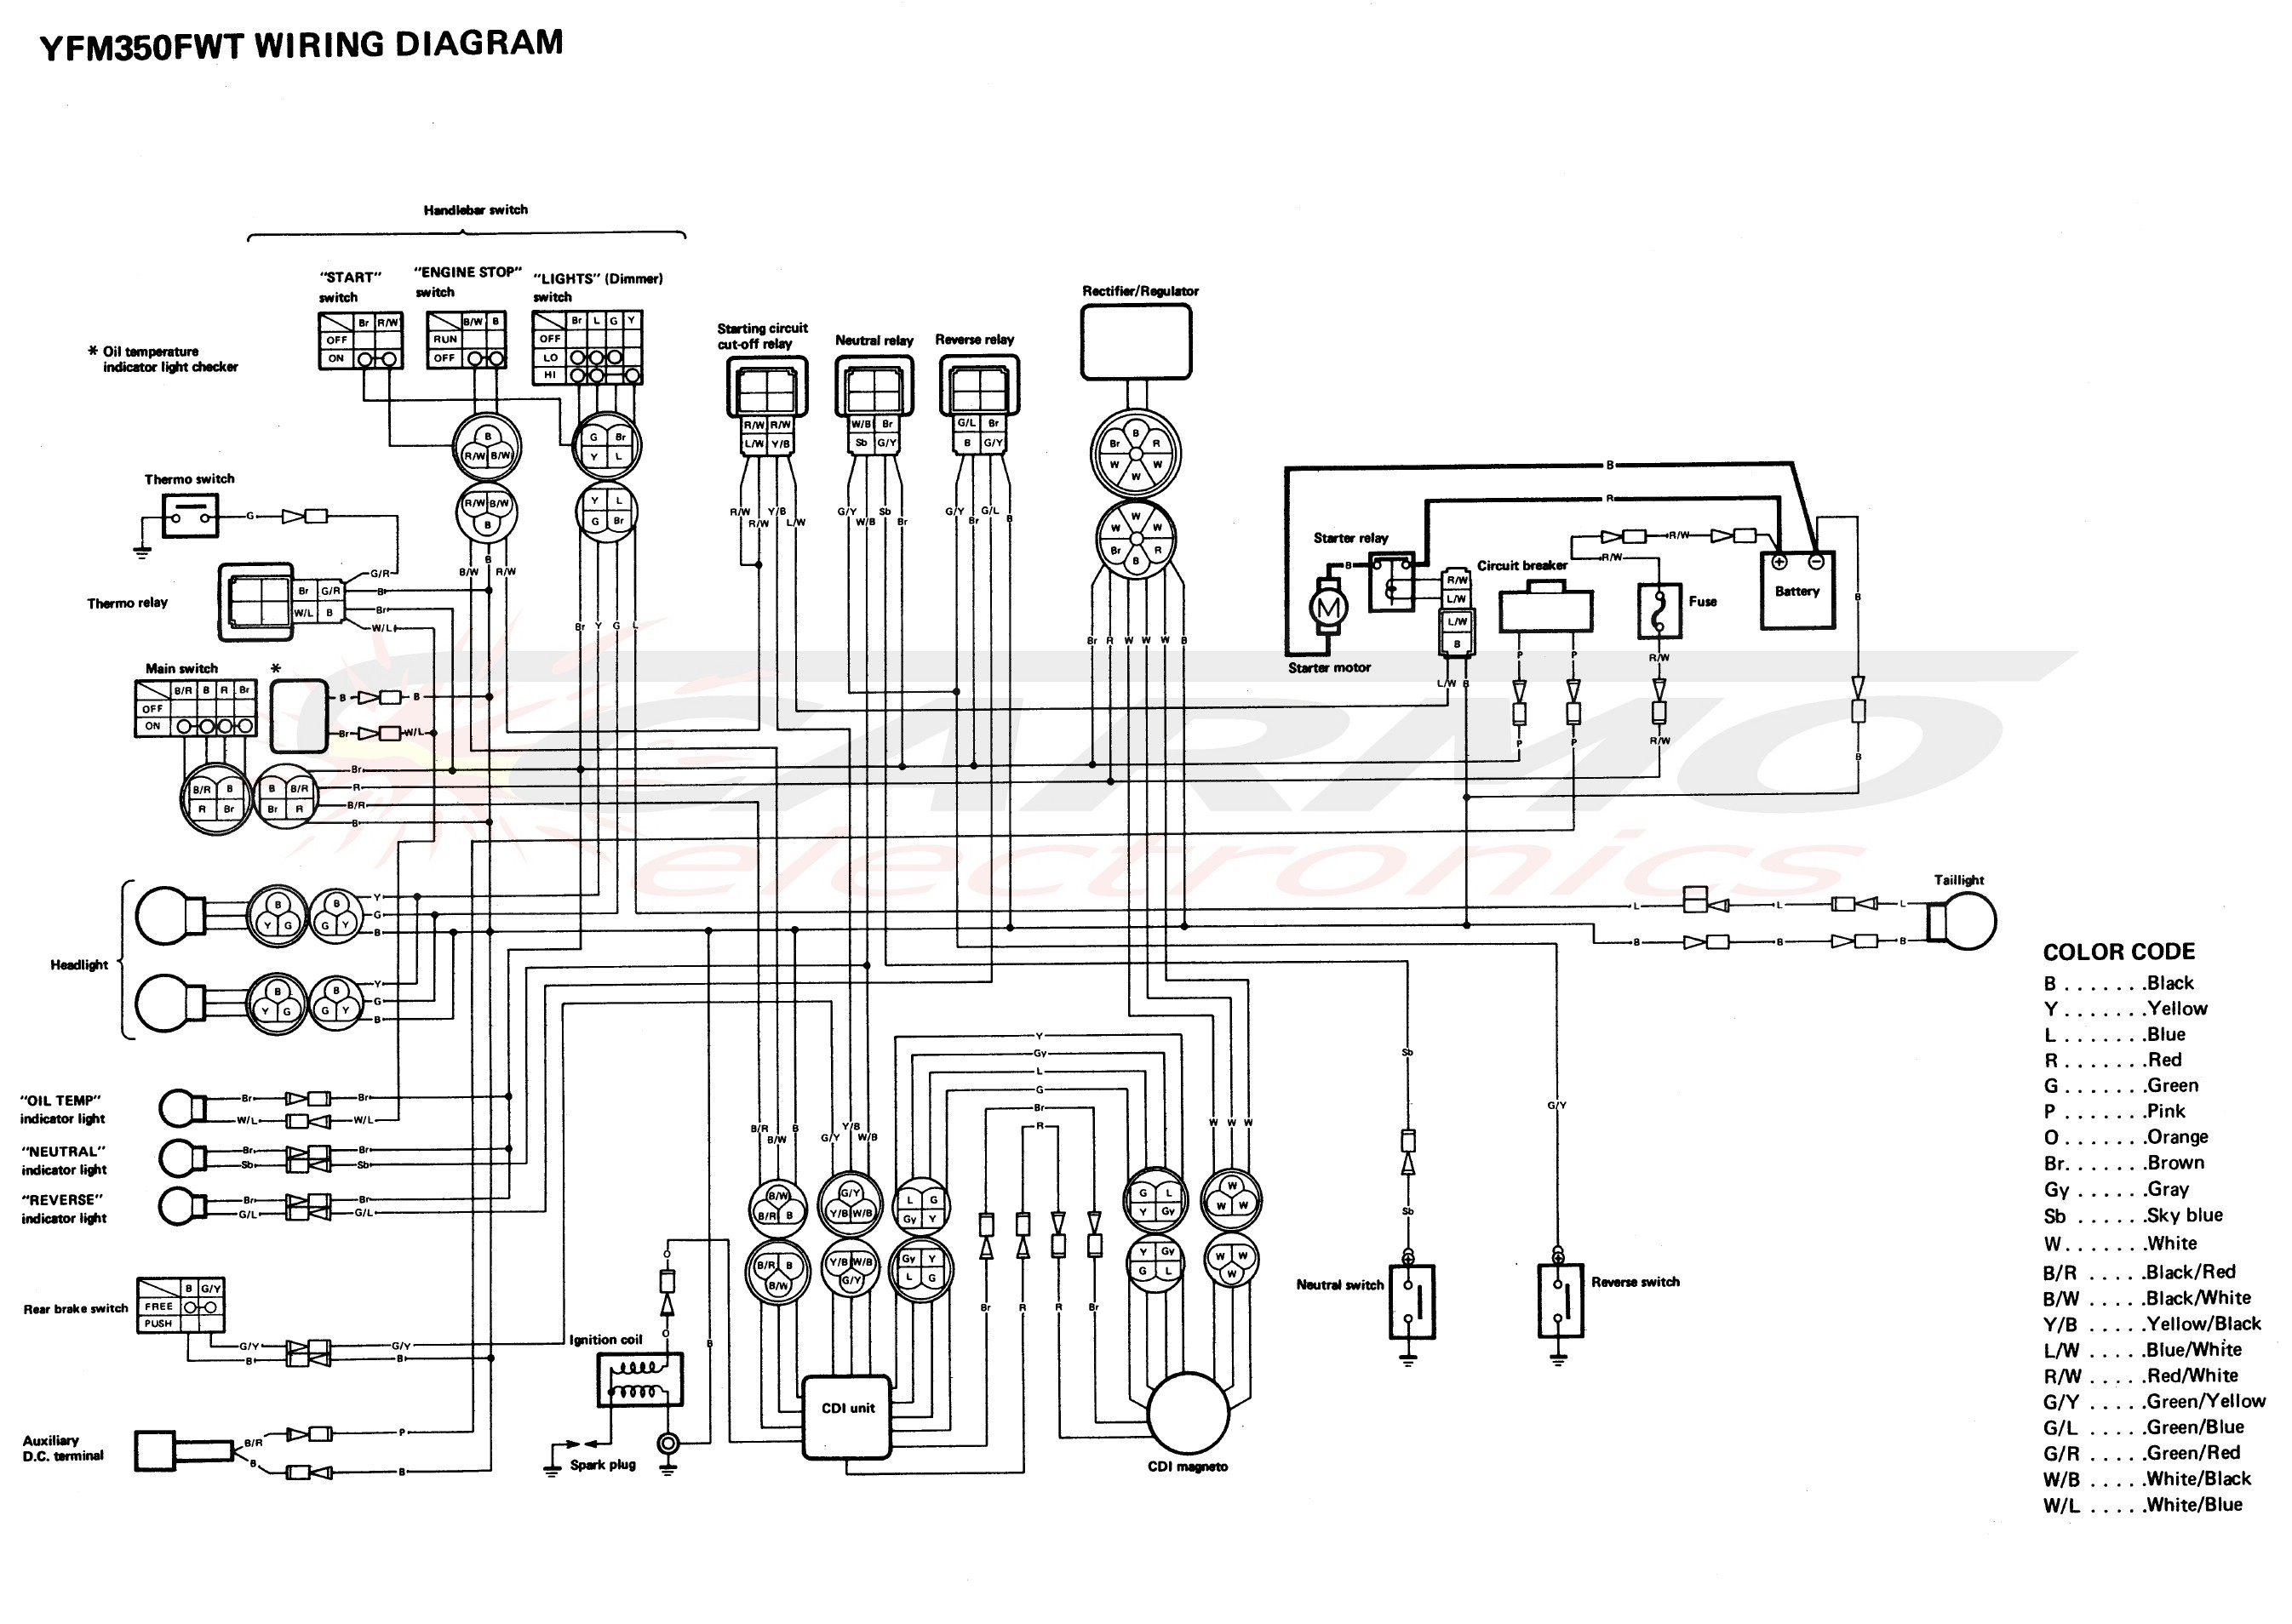 yamaha moto 4 cdi wire diagram example electrical wiring diagram u2022 rh cranejapan co 1990 Yamaha Moto 4 250 1990 Yamaha Moto 4 Troubleshoot